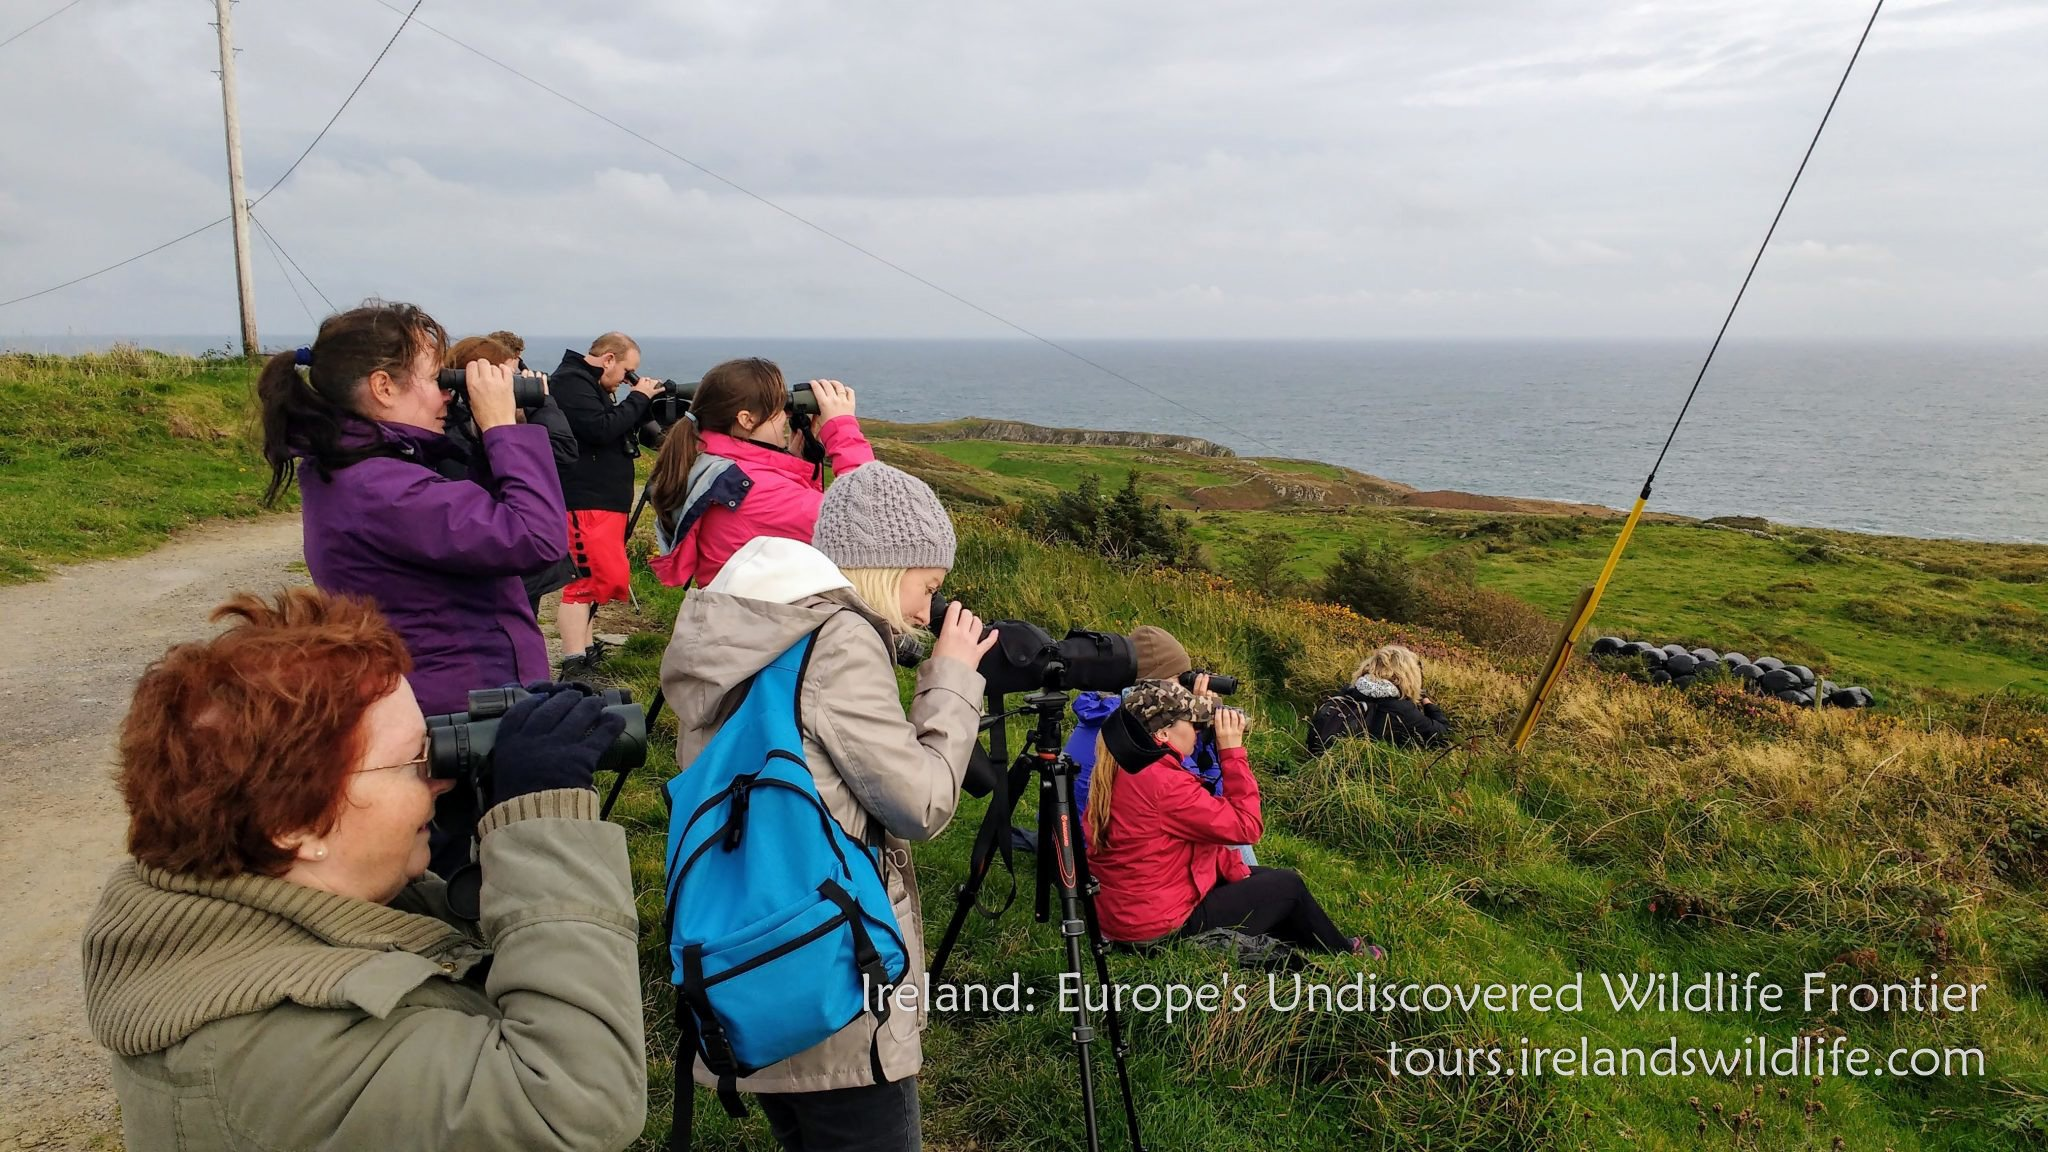 See whales and dolphins from shore on Ireland's Wild Atlantic Way.